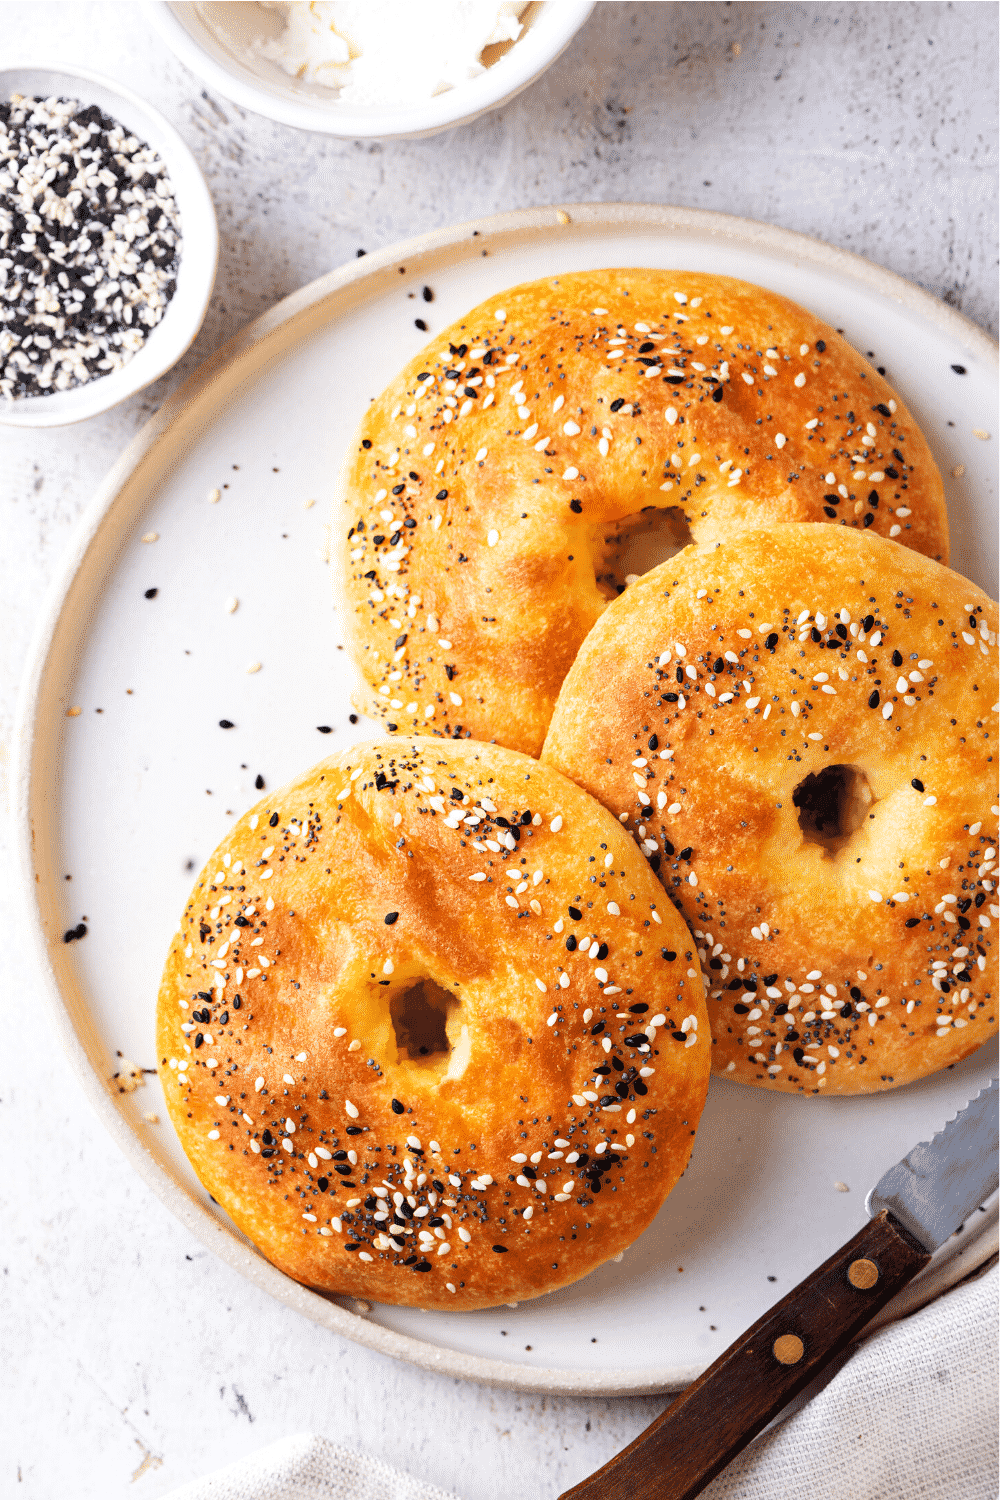 Three bagels overlapping one another on a white plate. There are small bowls of seasoning and butter behind